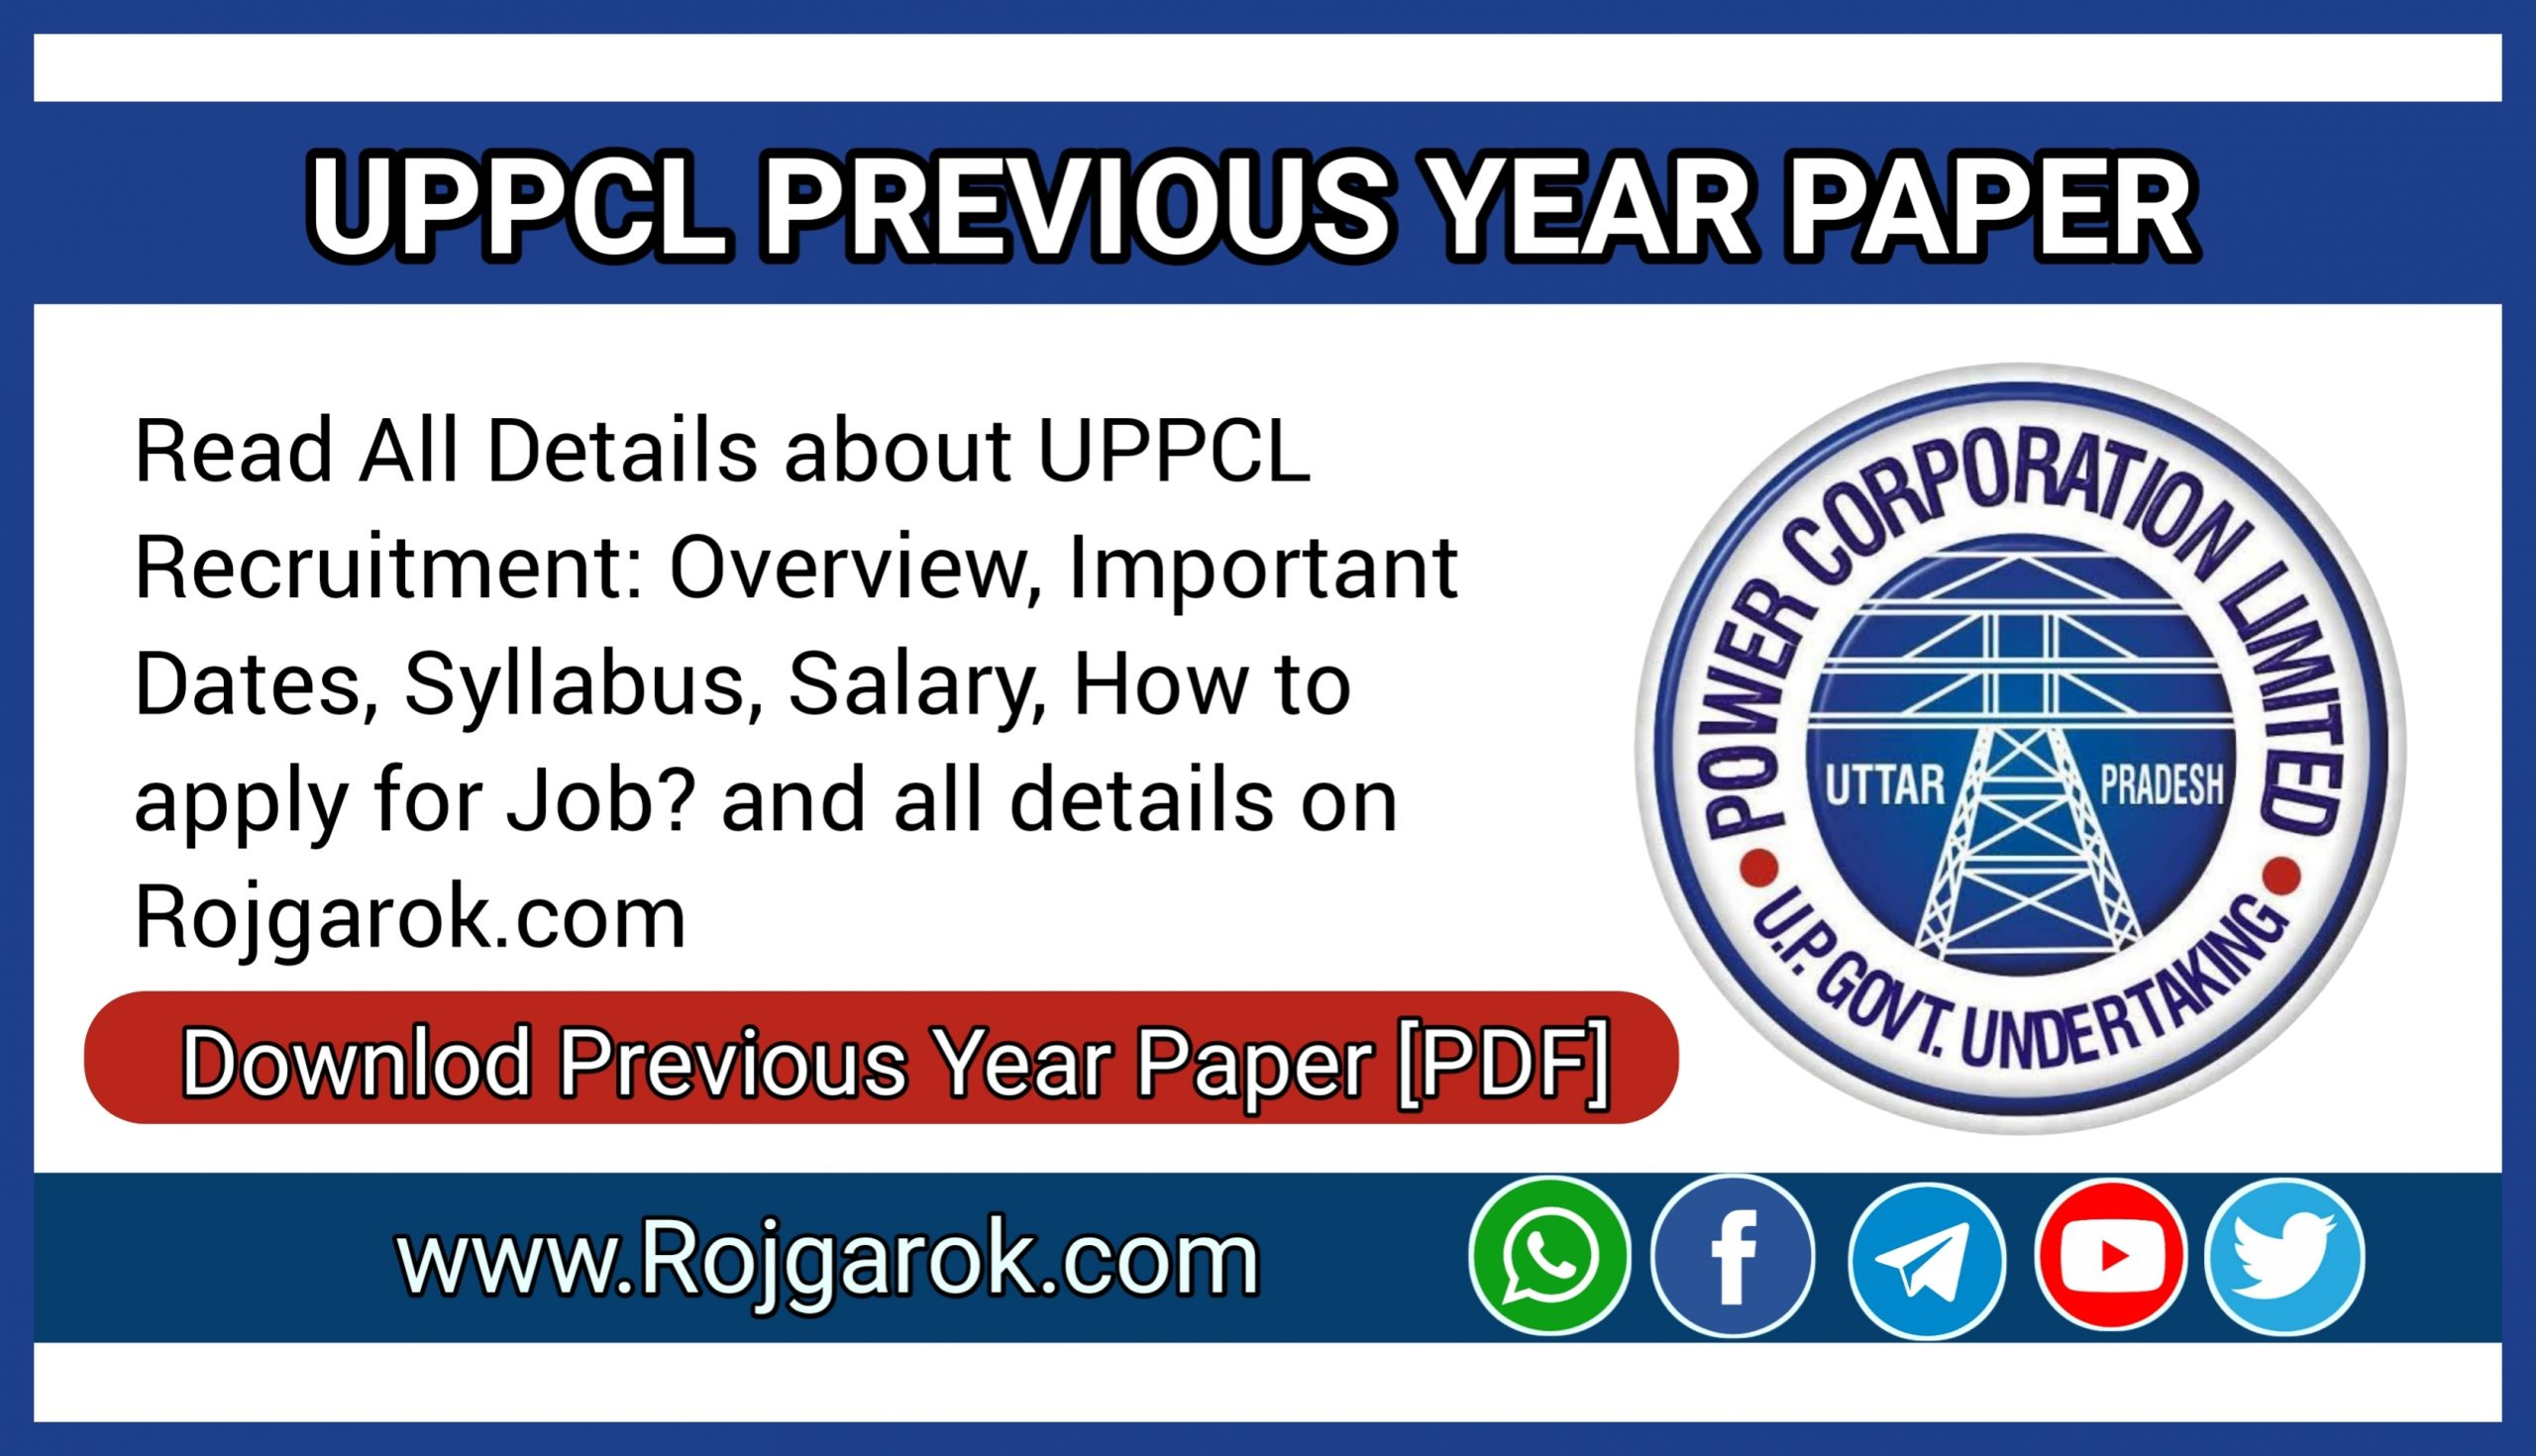 UPPCL Previous Year Paper 2021